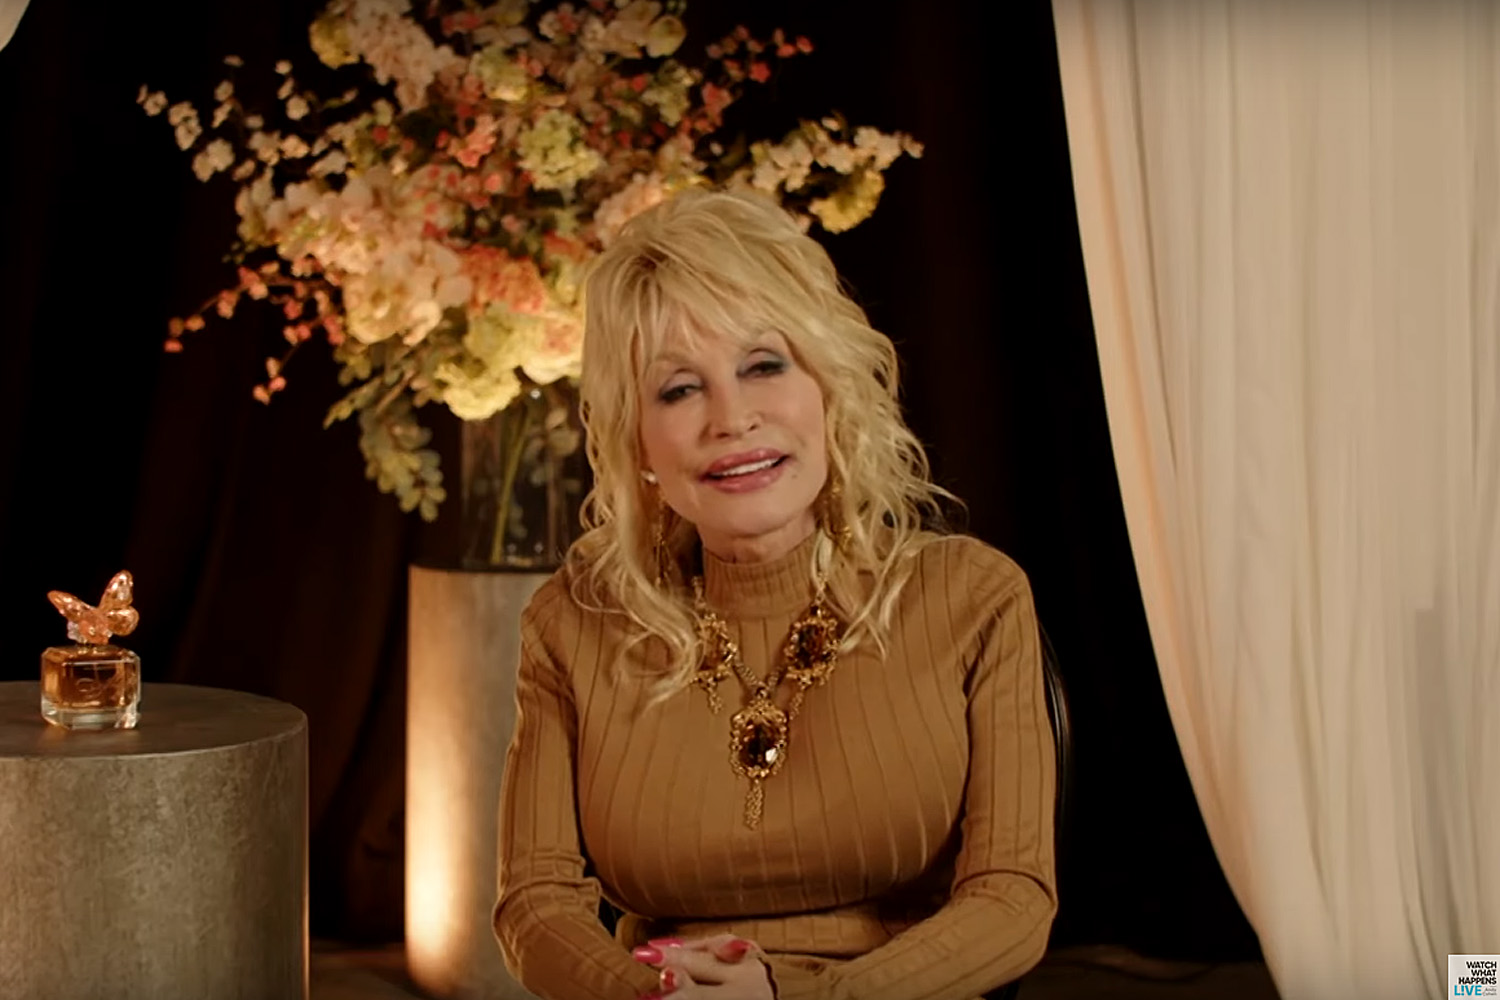 Does Dolly Parton Stay So Positive?